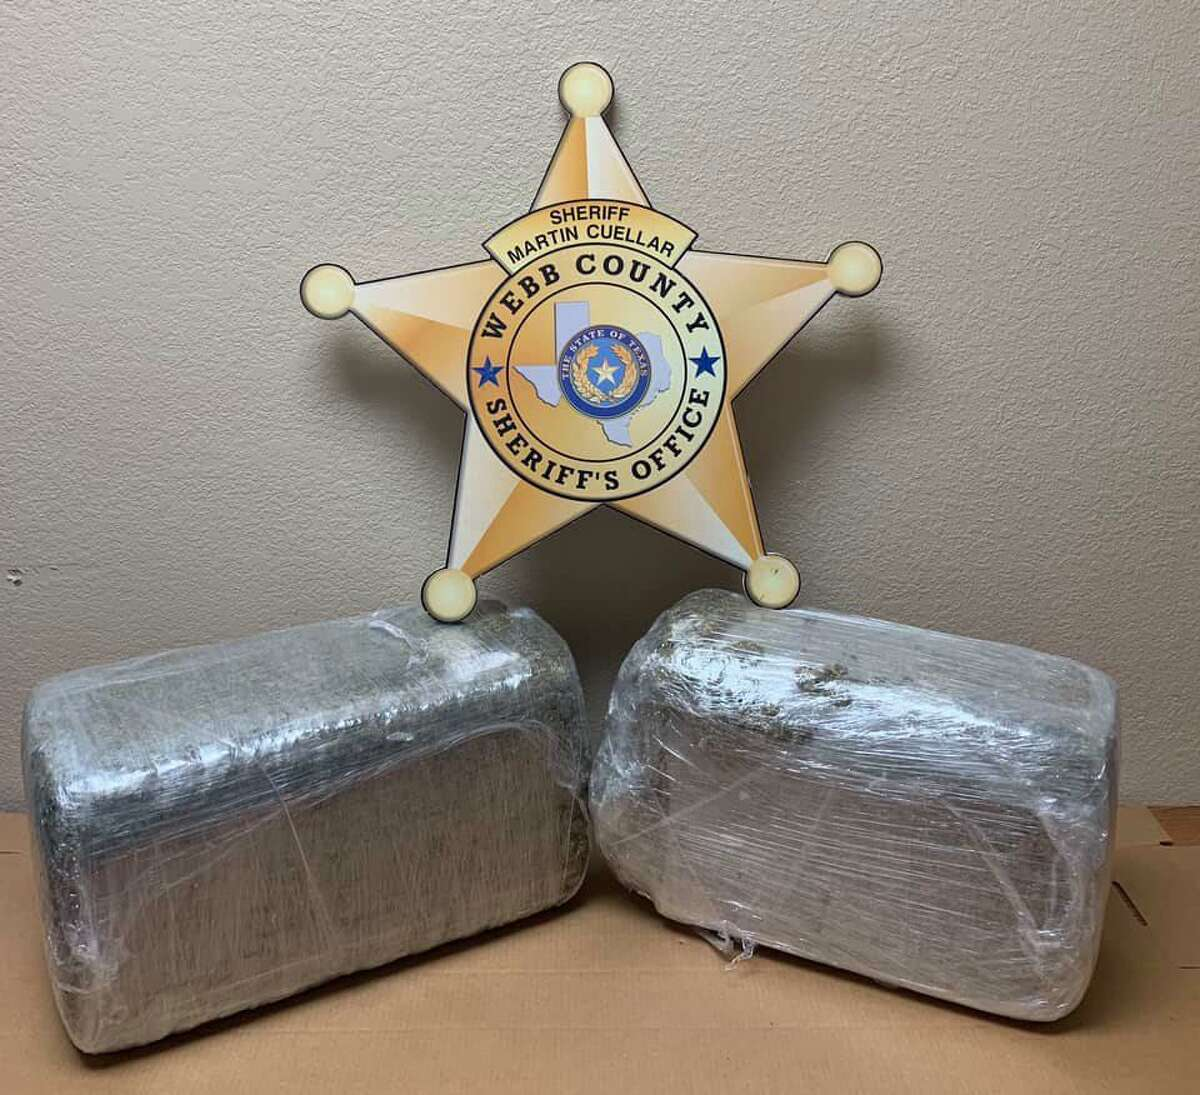 Shown are the two seized bundles of pot weighing 39 pounds which have an estimated street value of $12,000.